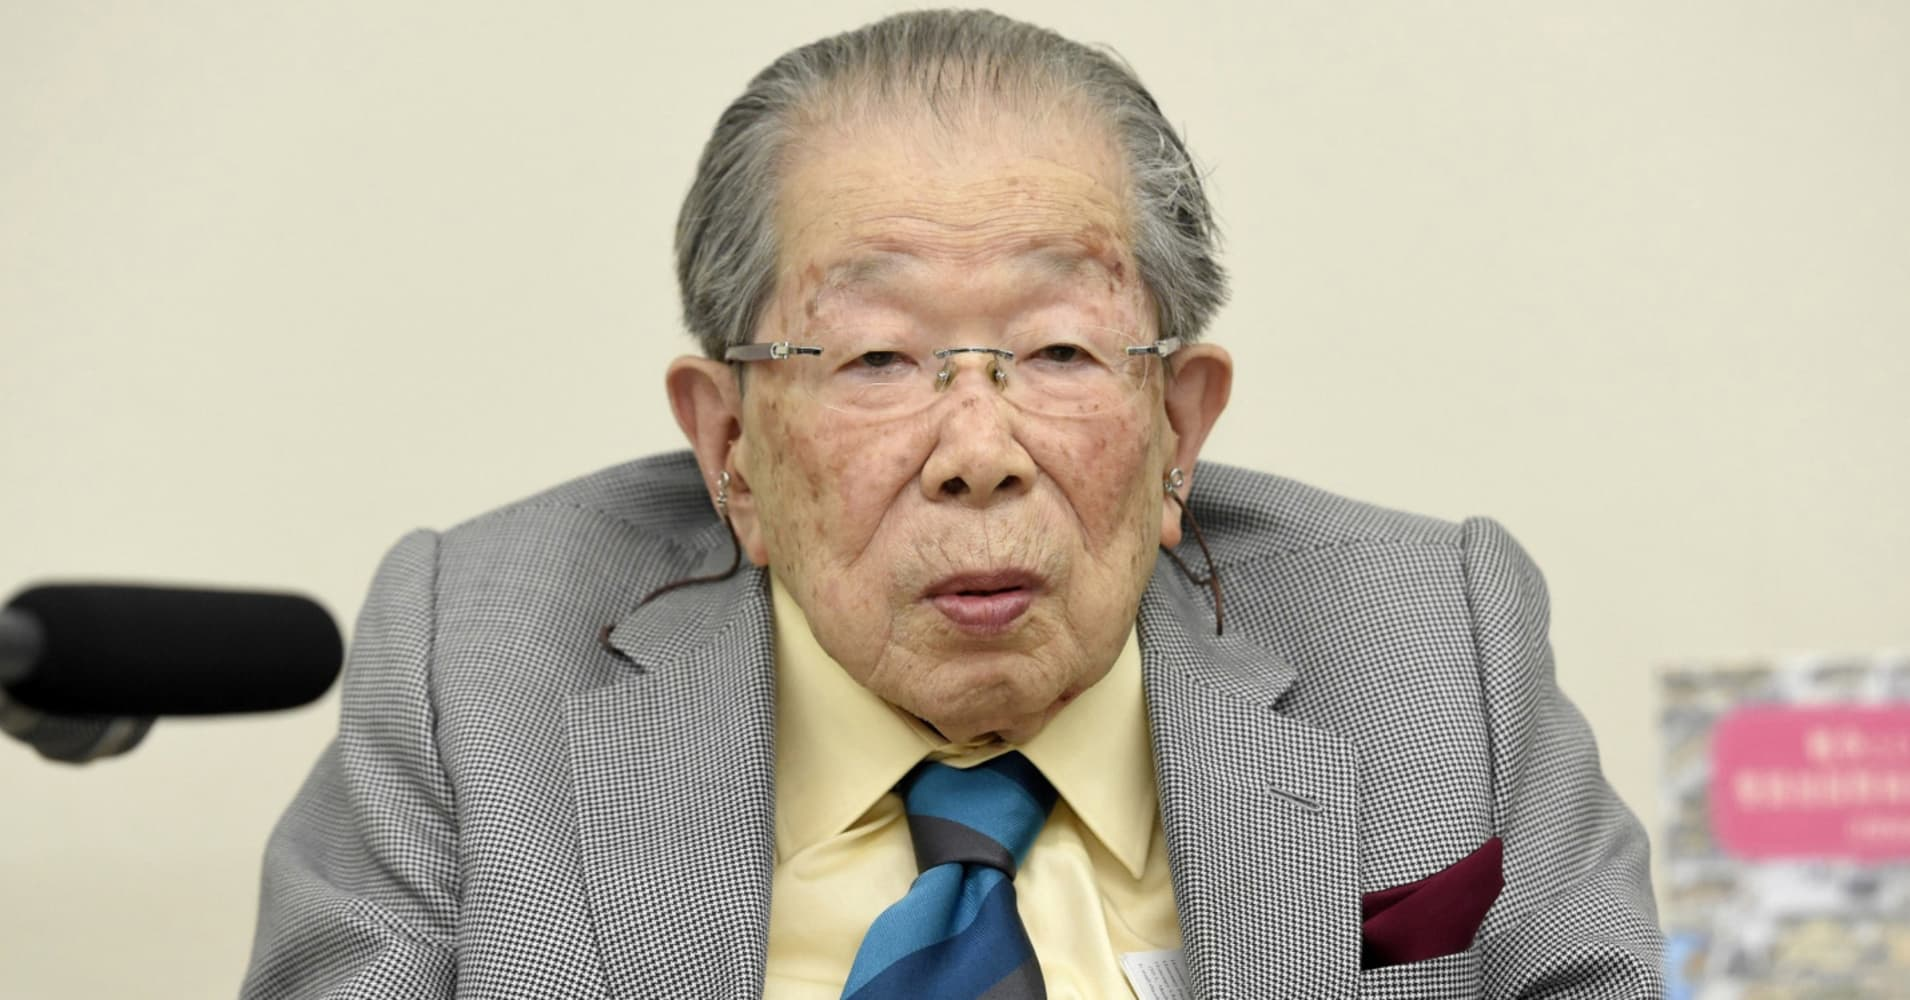 Japanese doctor Shigeaki Hinohara attends a news conference in Tokyo, Japan in this photo taken by Kyodo on September 25, 2015.